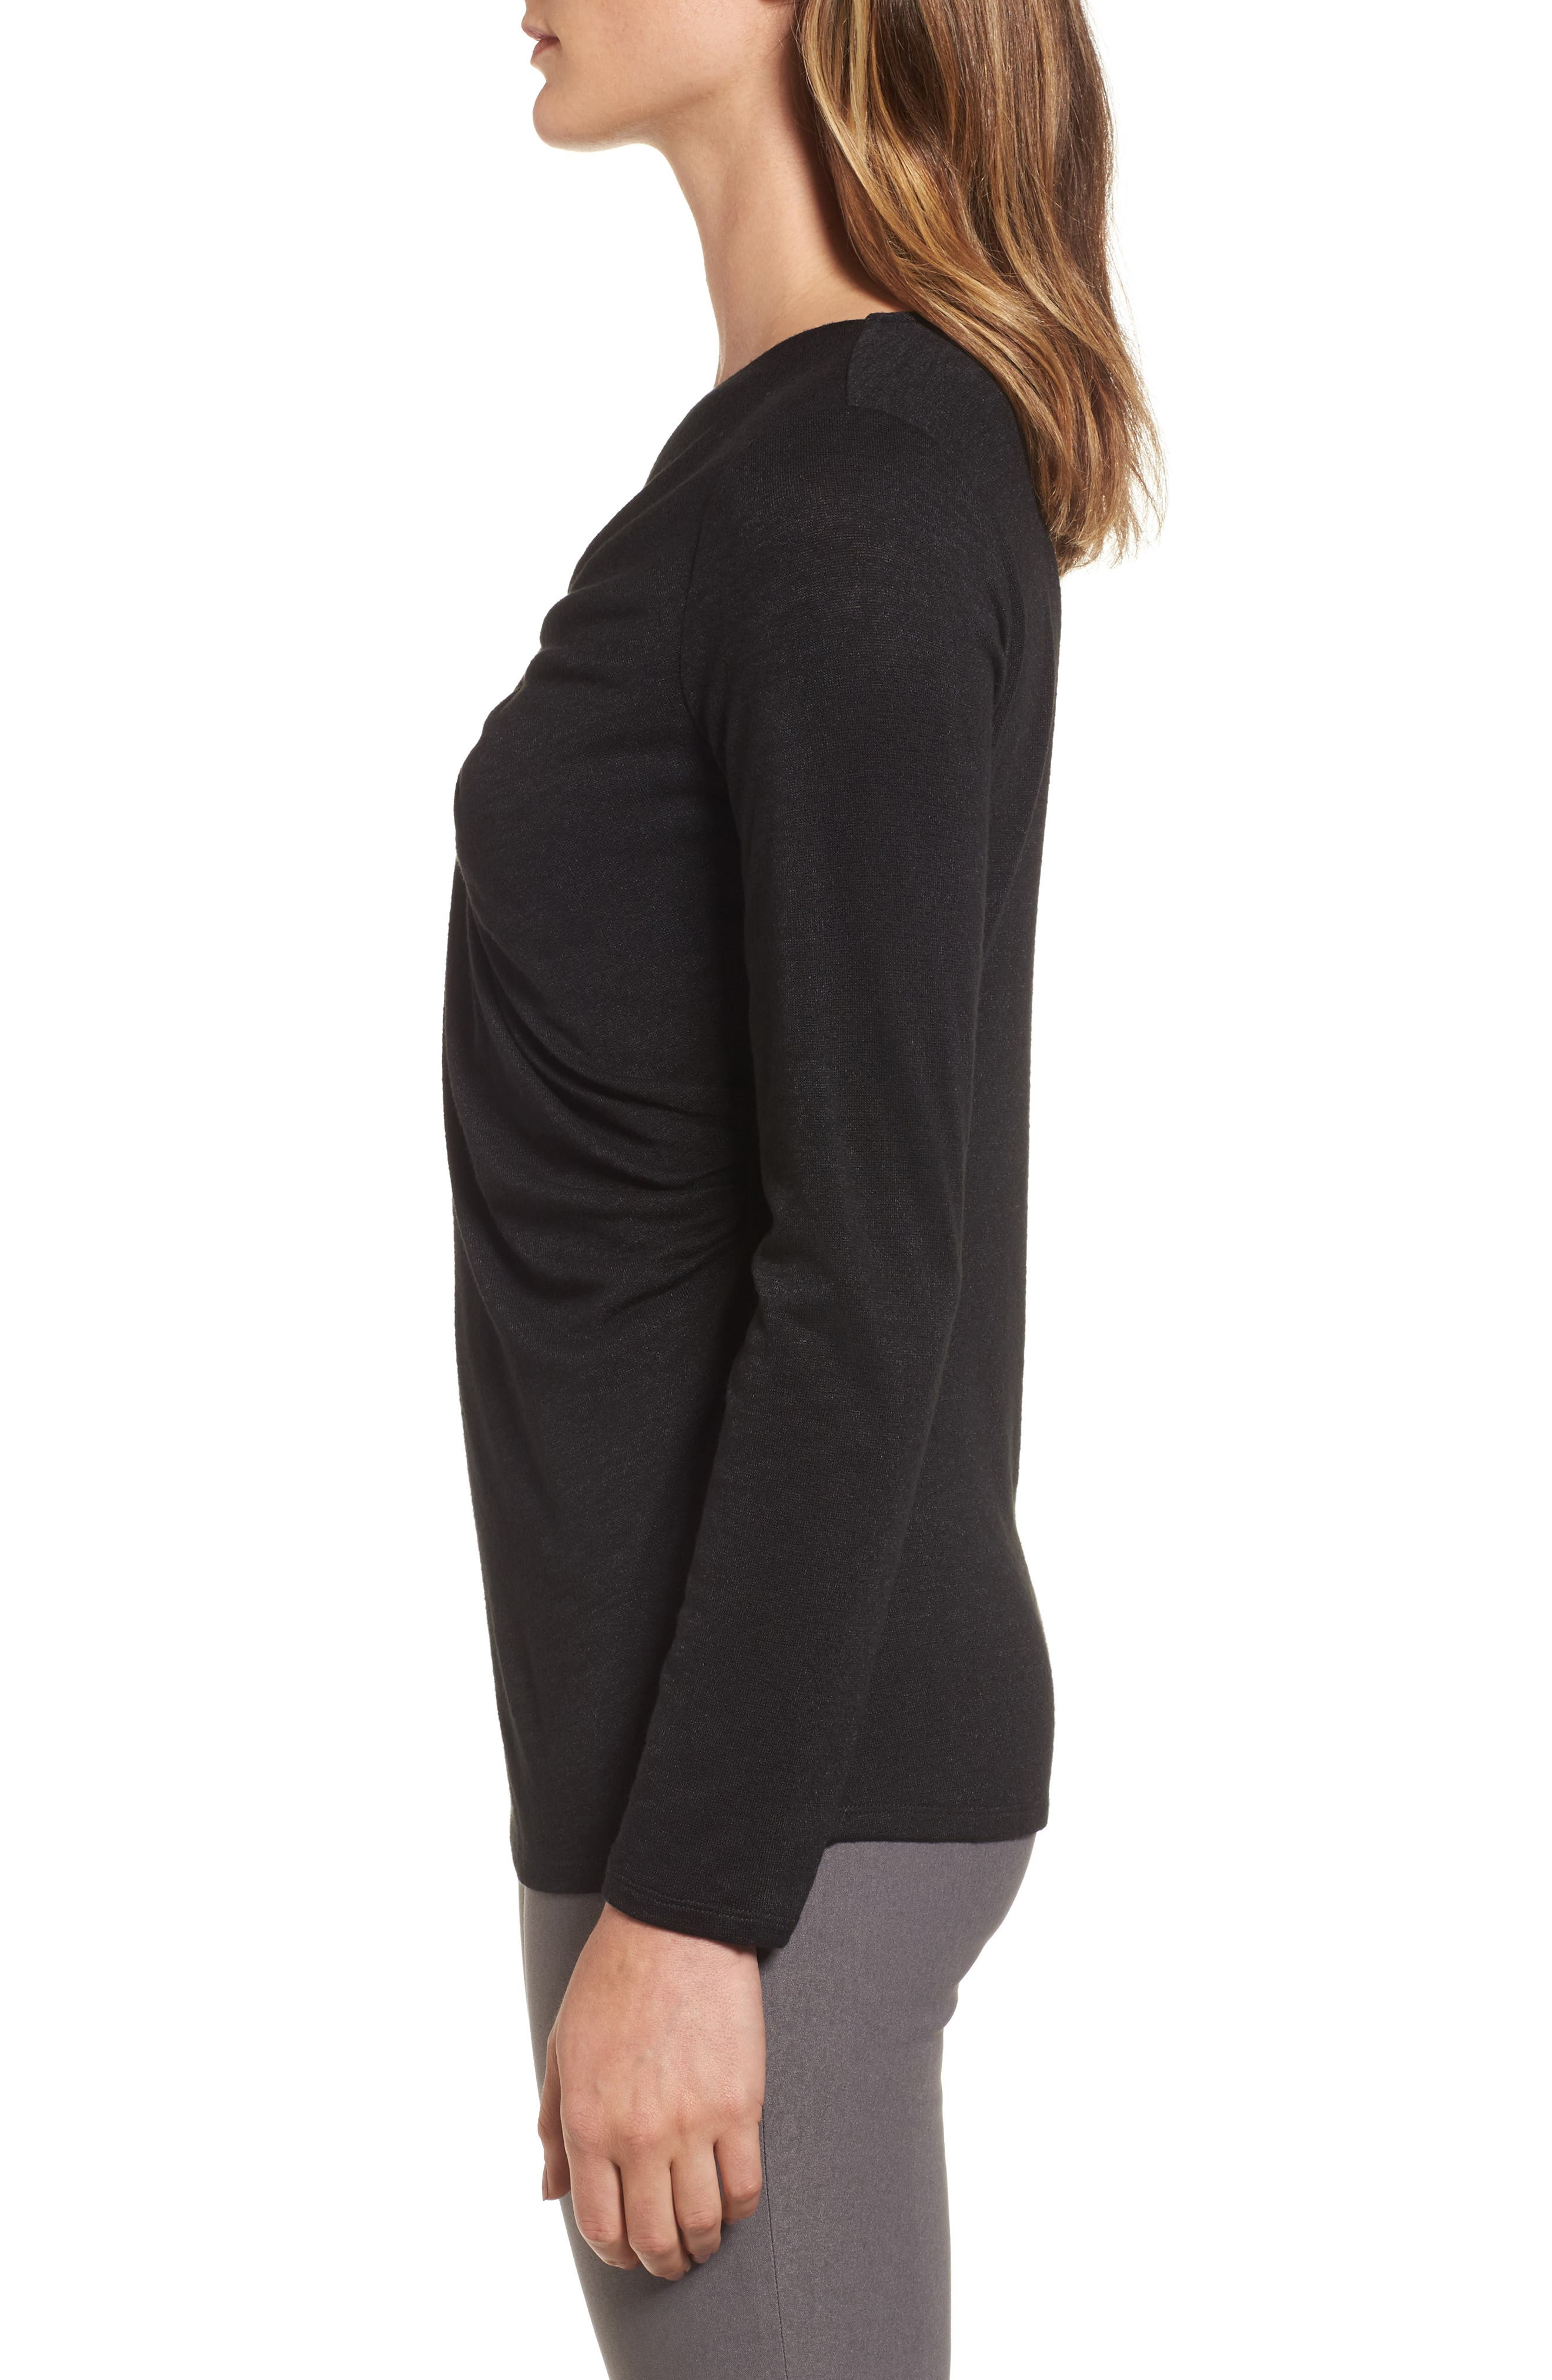 Every Occasion Drape Top,                             Alternate thumbnail 3, color,                             004